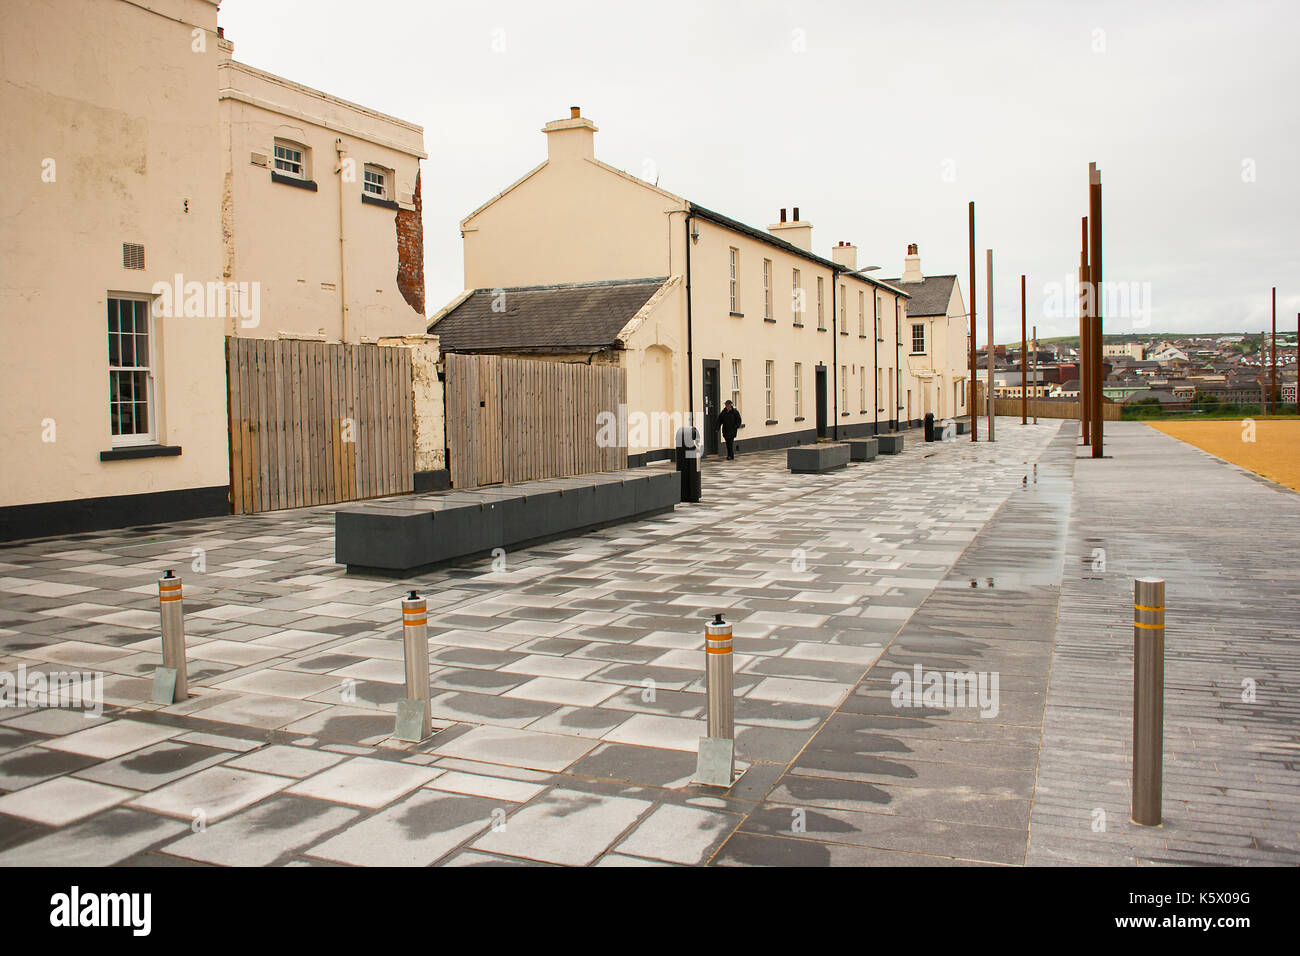 The old Ebrington Army barracks the one time home of the South Wales Borderers British army regiment in Londonderry in Northern Ireland - Stock Image